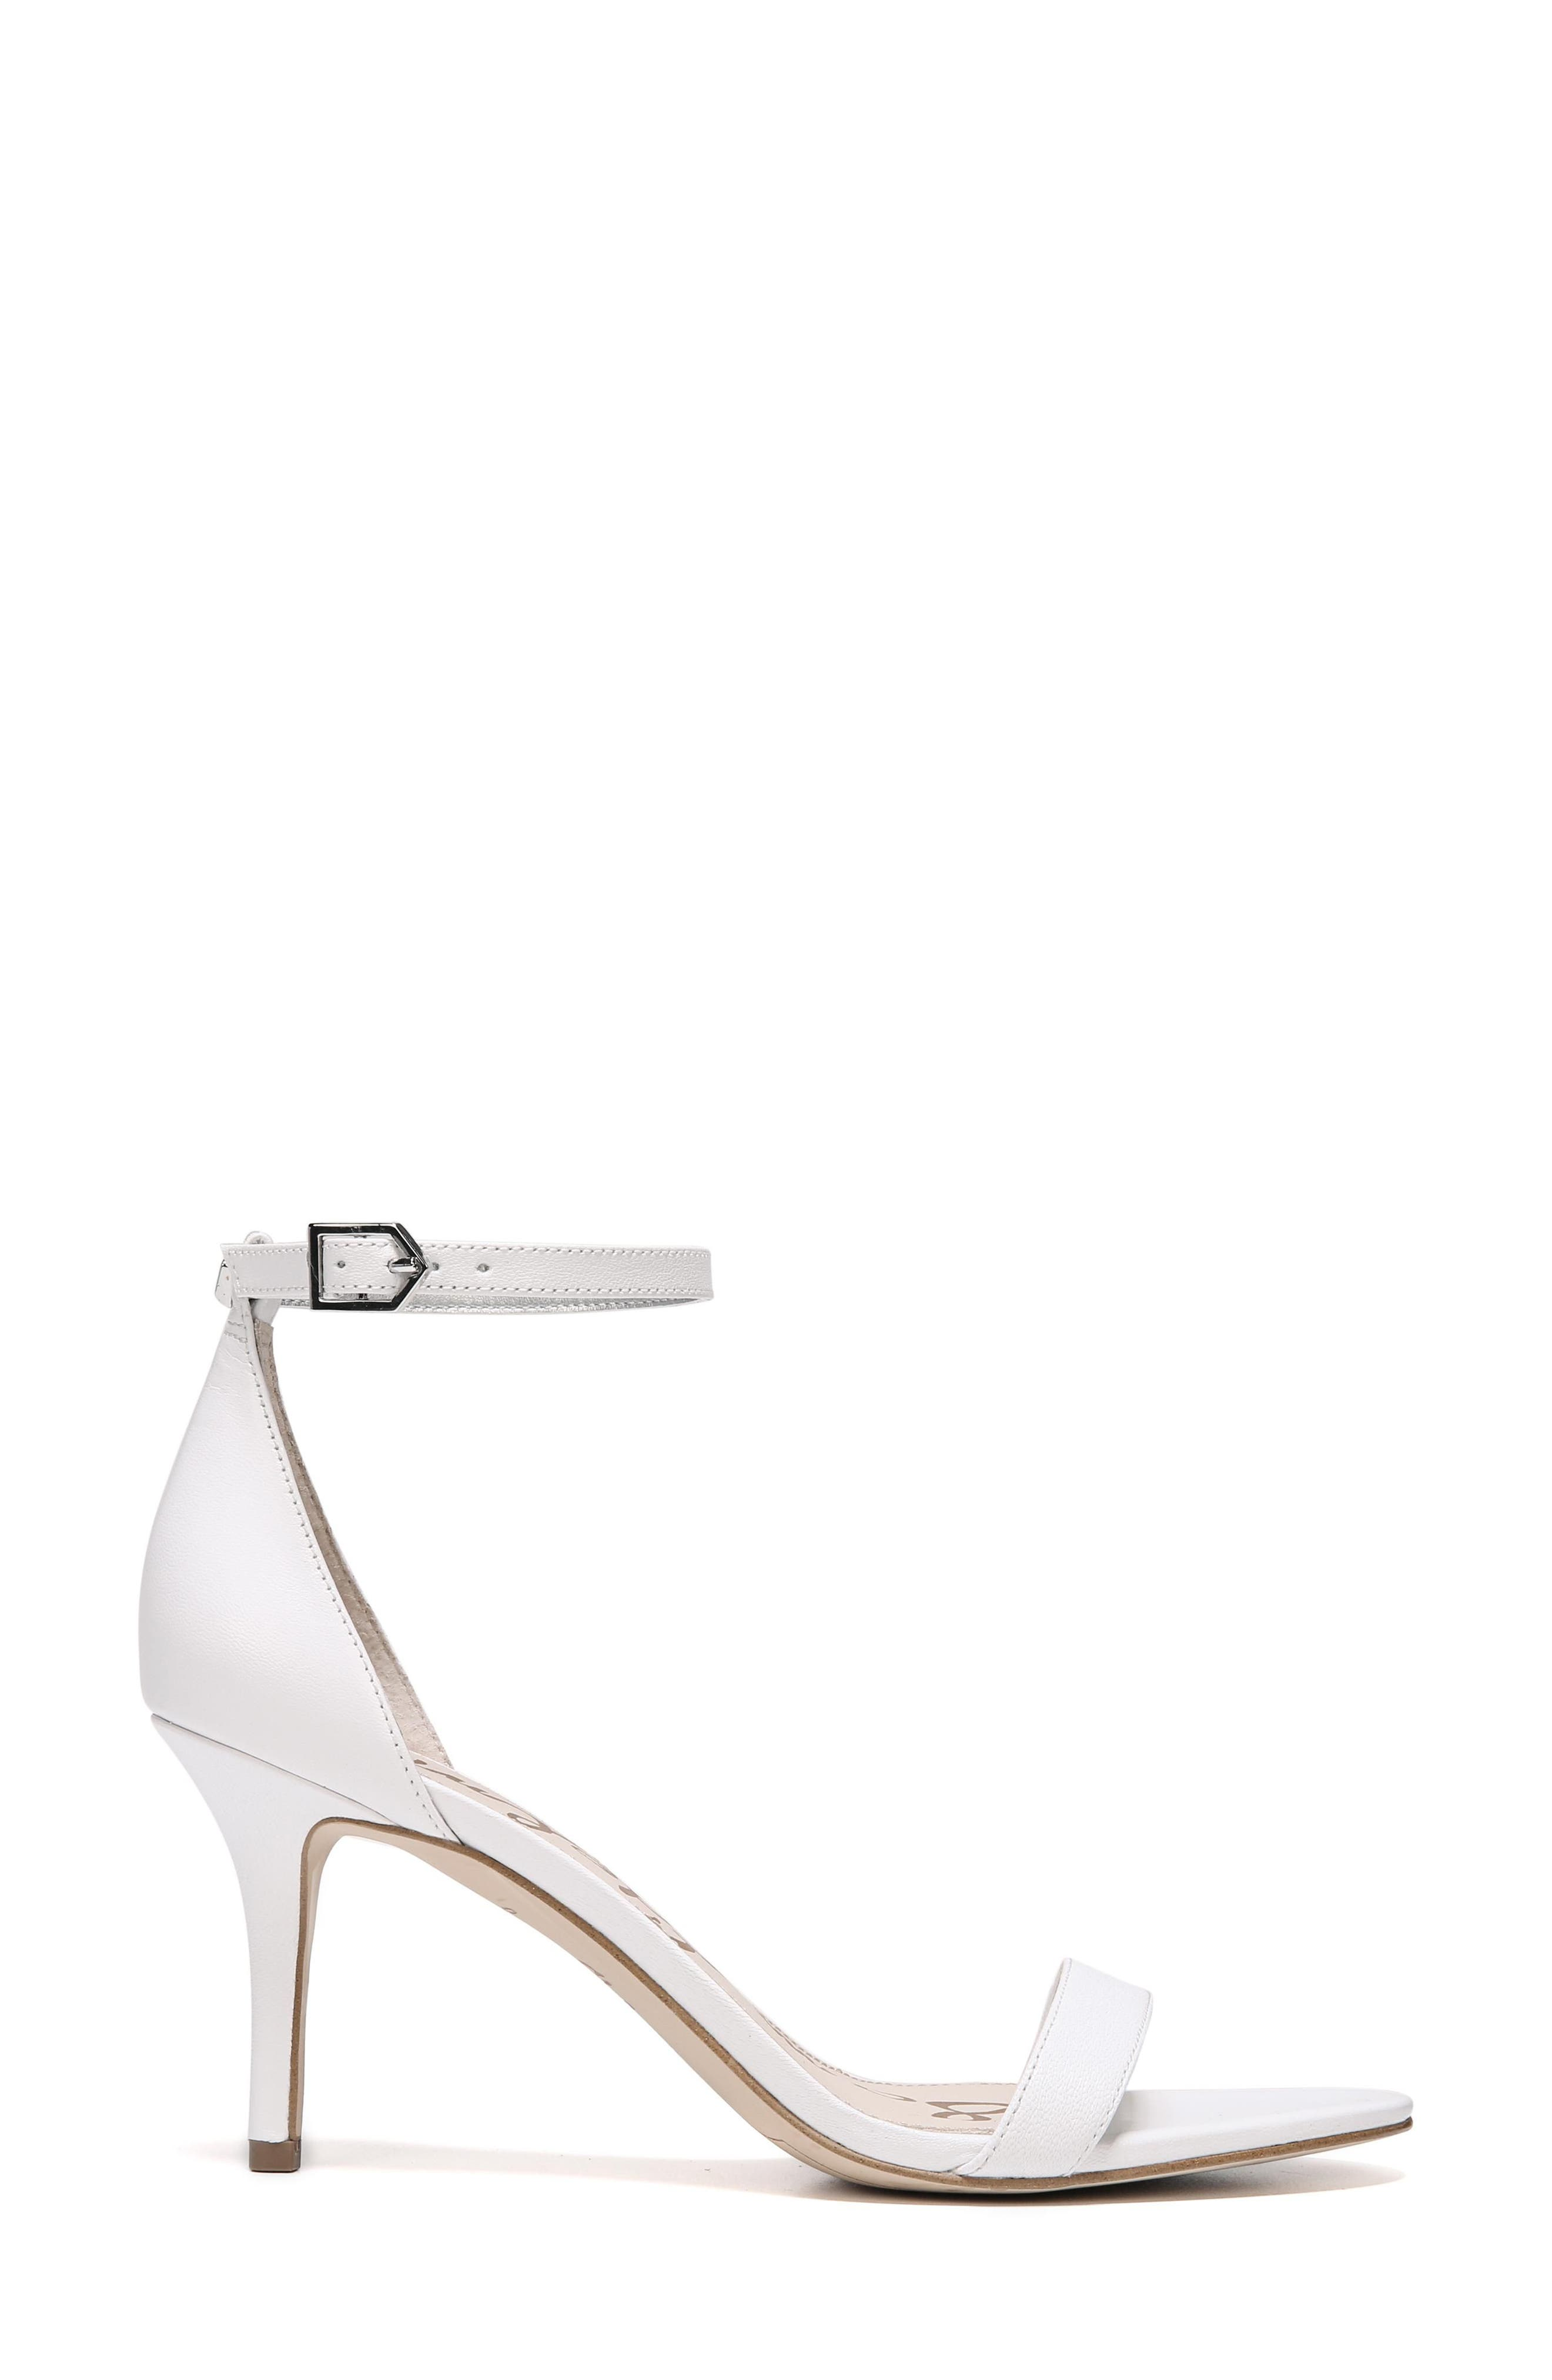 'Patti' Ankle Strap Sandal,                             Alternate thumbnail 2, color,                             BRIGHT WHITE LEATHER